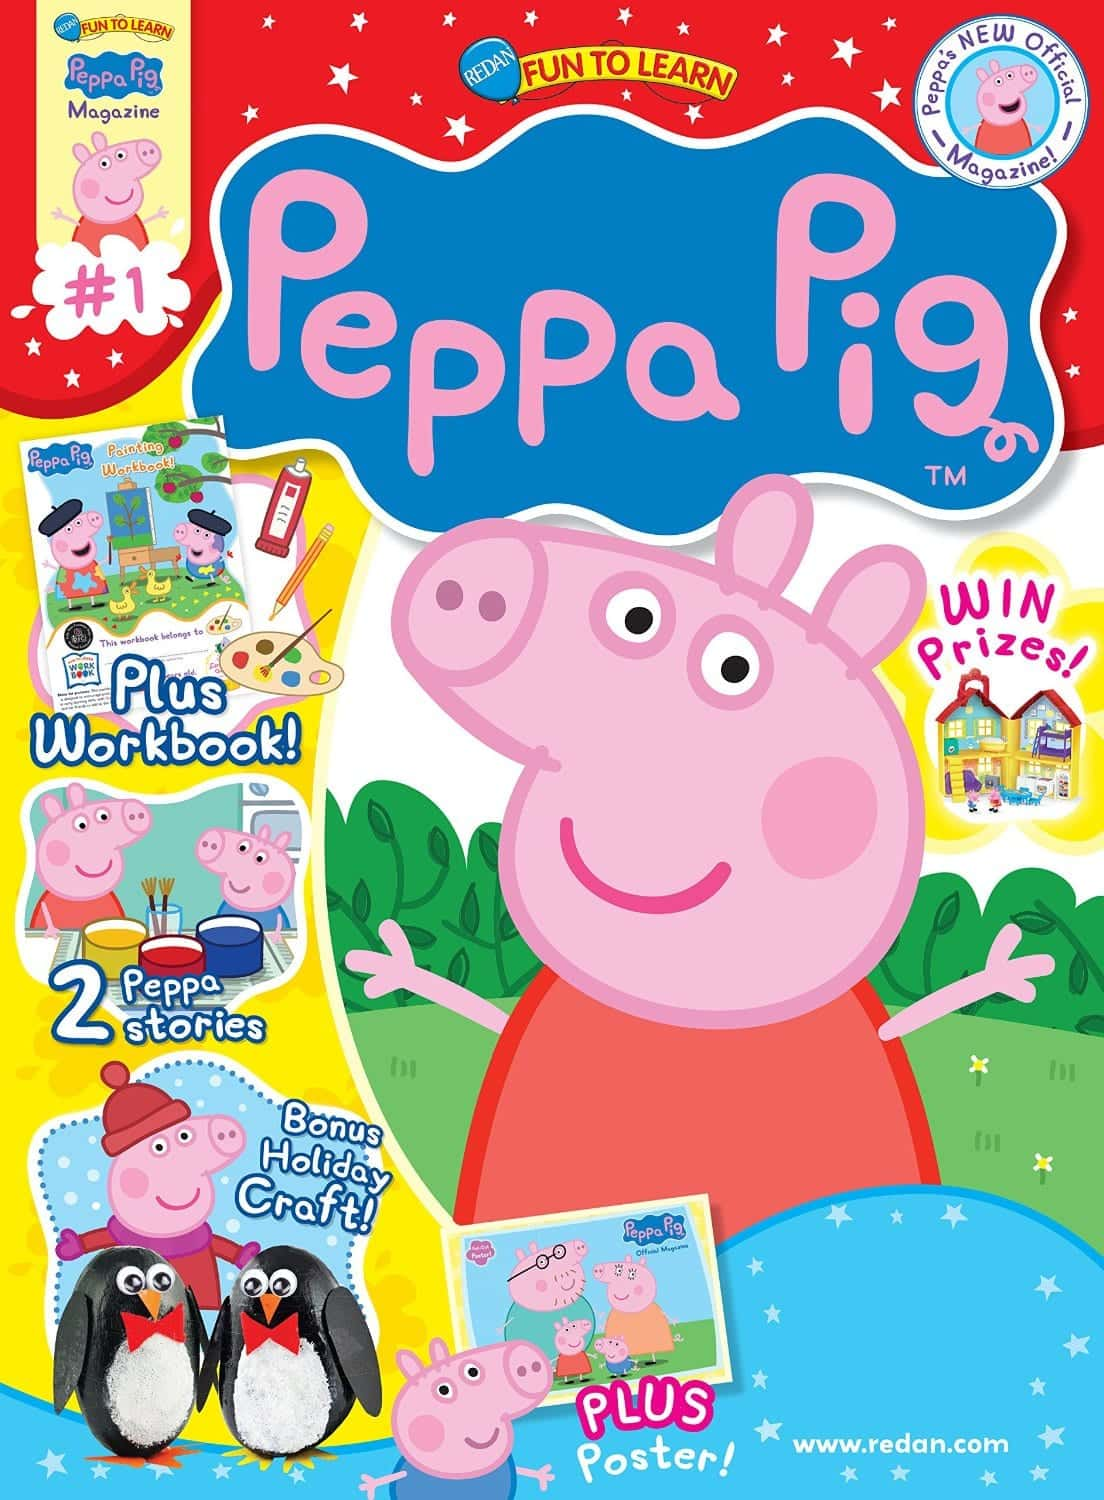 Peppa Pig Magazine Subscription – On Sale for $12.99 for 1 Year Subscription! (reg $28.97)